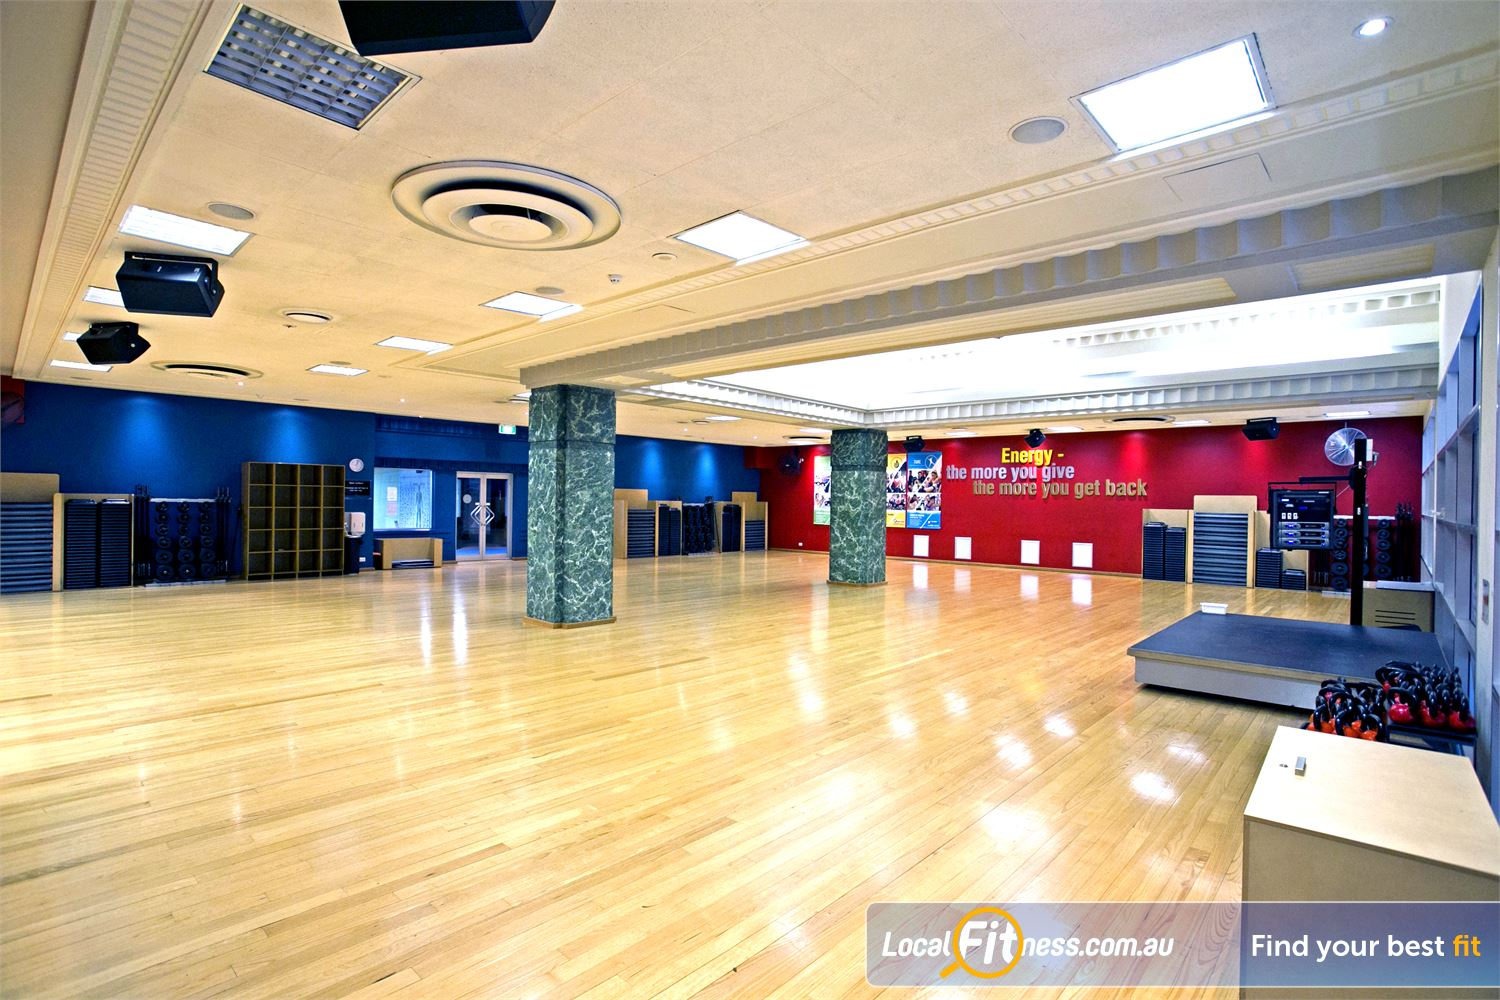 Goodlife Health Clubs Adelaide City Near Adelaide Airport Popular classes includes Les Mills, Adelaide Yoga, Pilates and more.